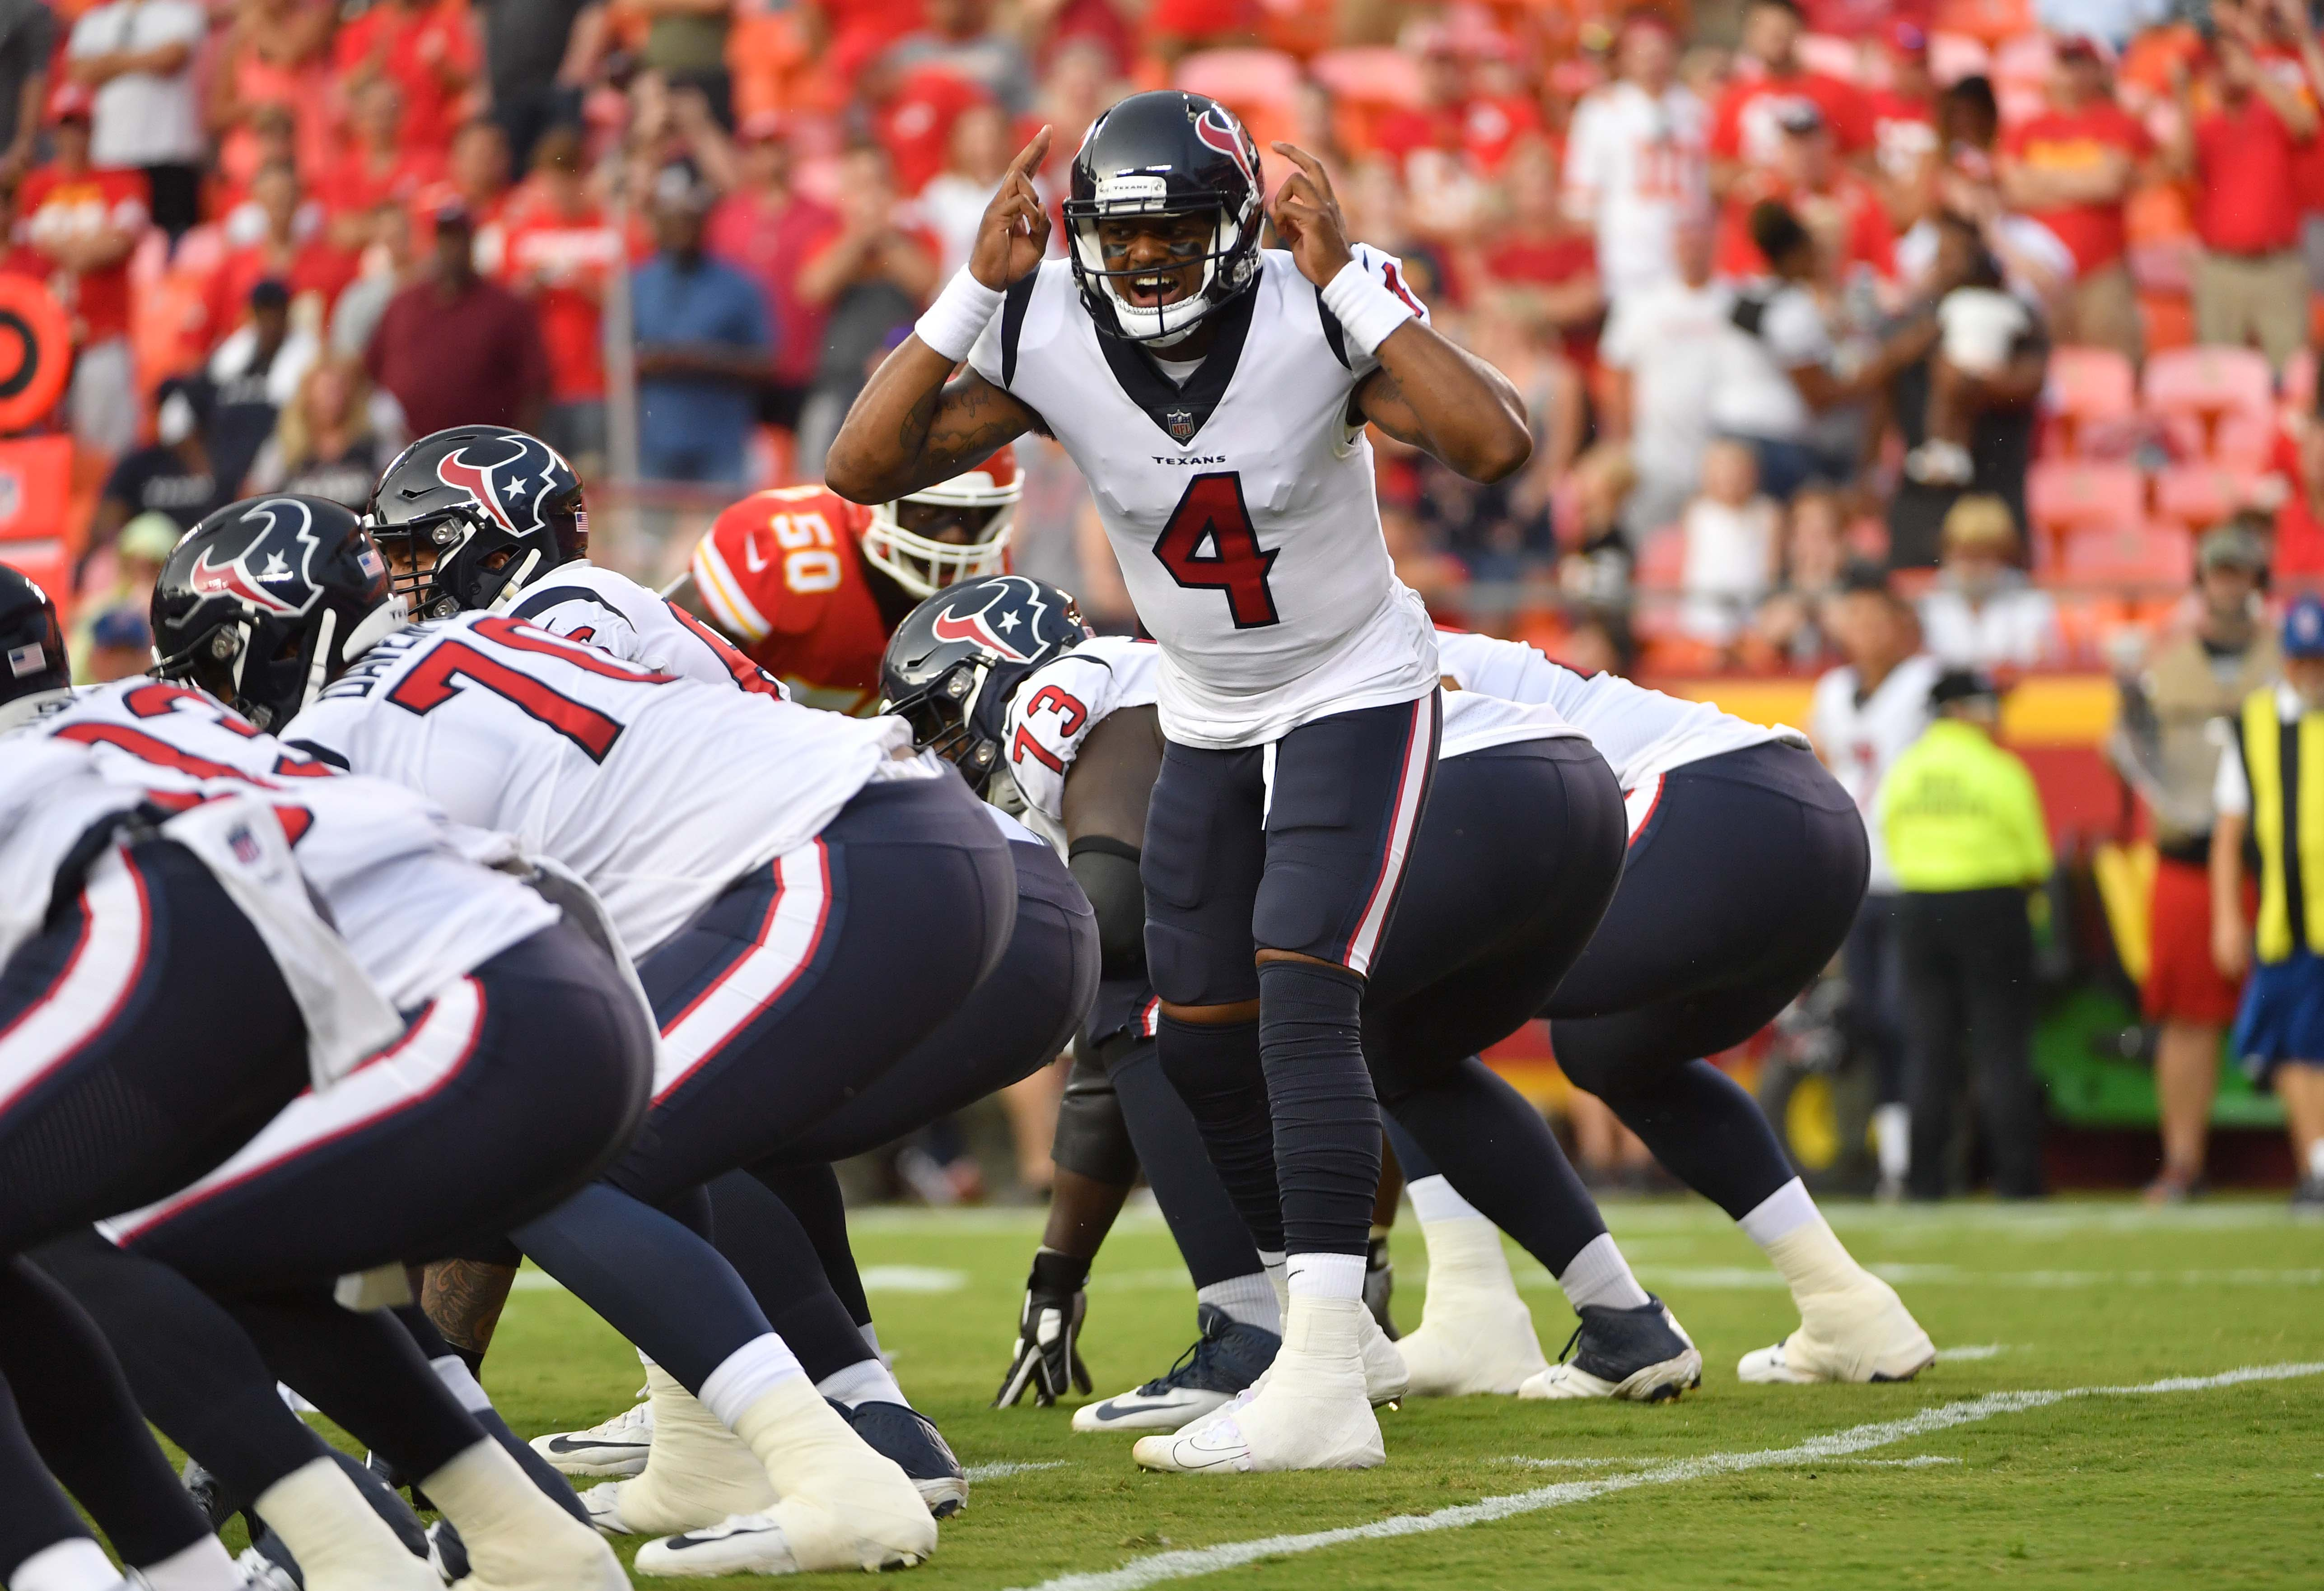 Aug 9, 2018; Kansas City, MO, USA; Houston Texans quarterback Deshaun Watson (4) motions on the line of scrimmage during the first half against the Kansas City Chiefs at Arrowhead Stadium. Mandatory Credit: Denny Medley-USA TODAY Sports